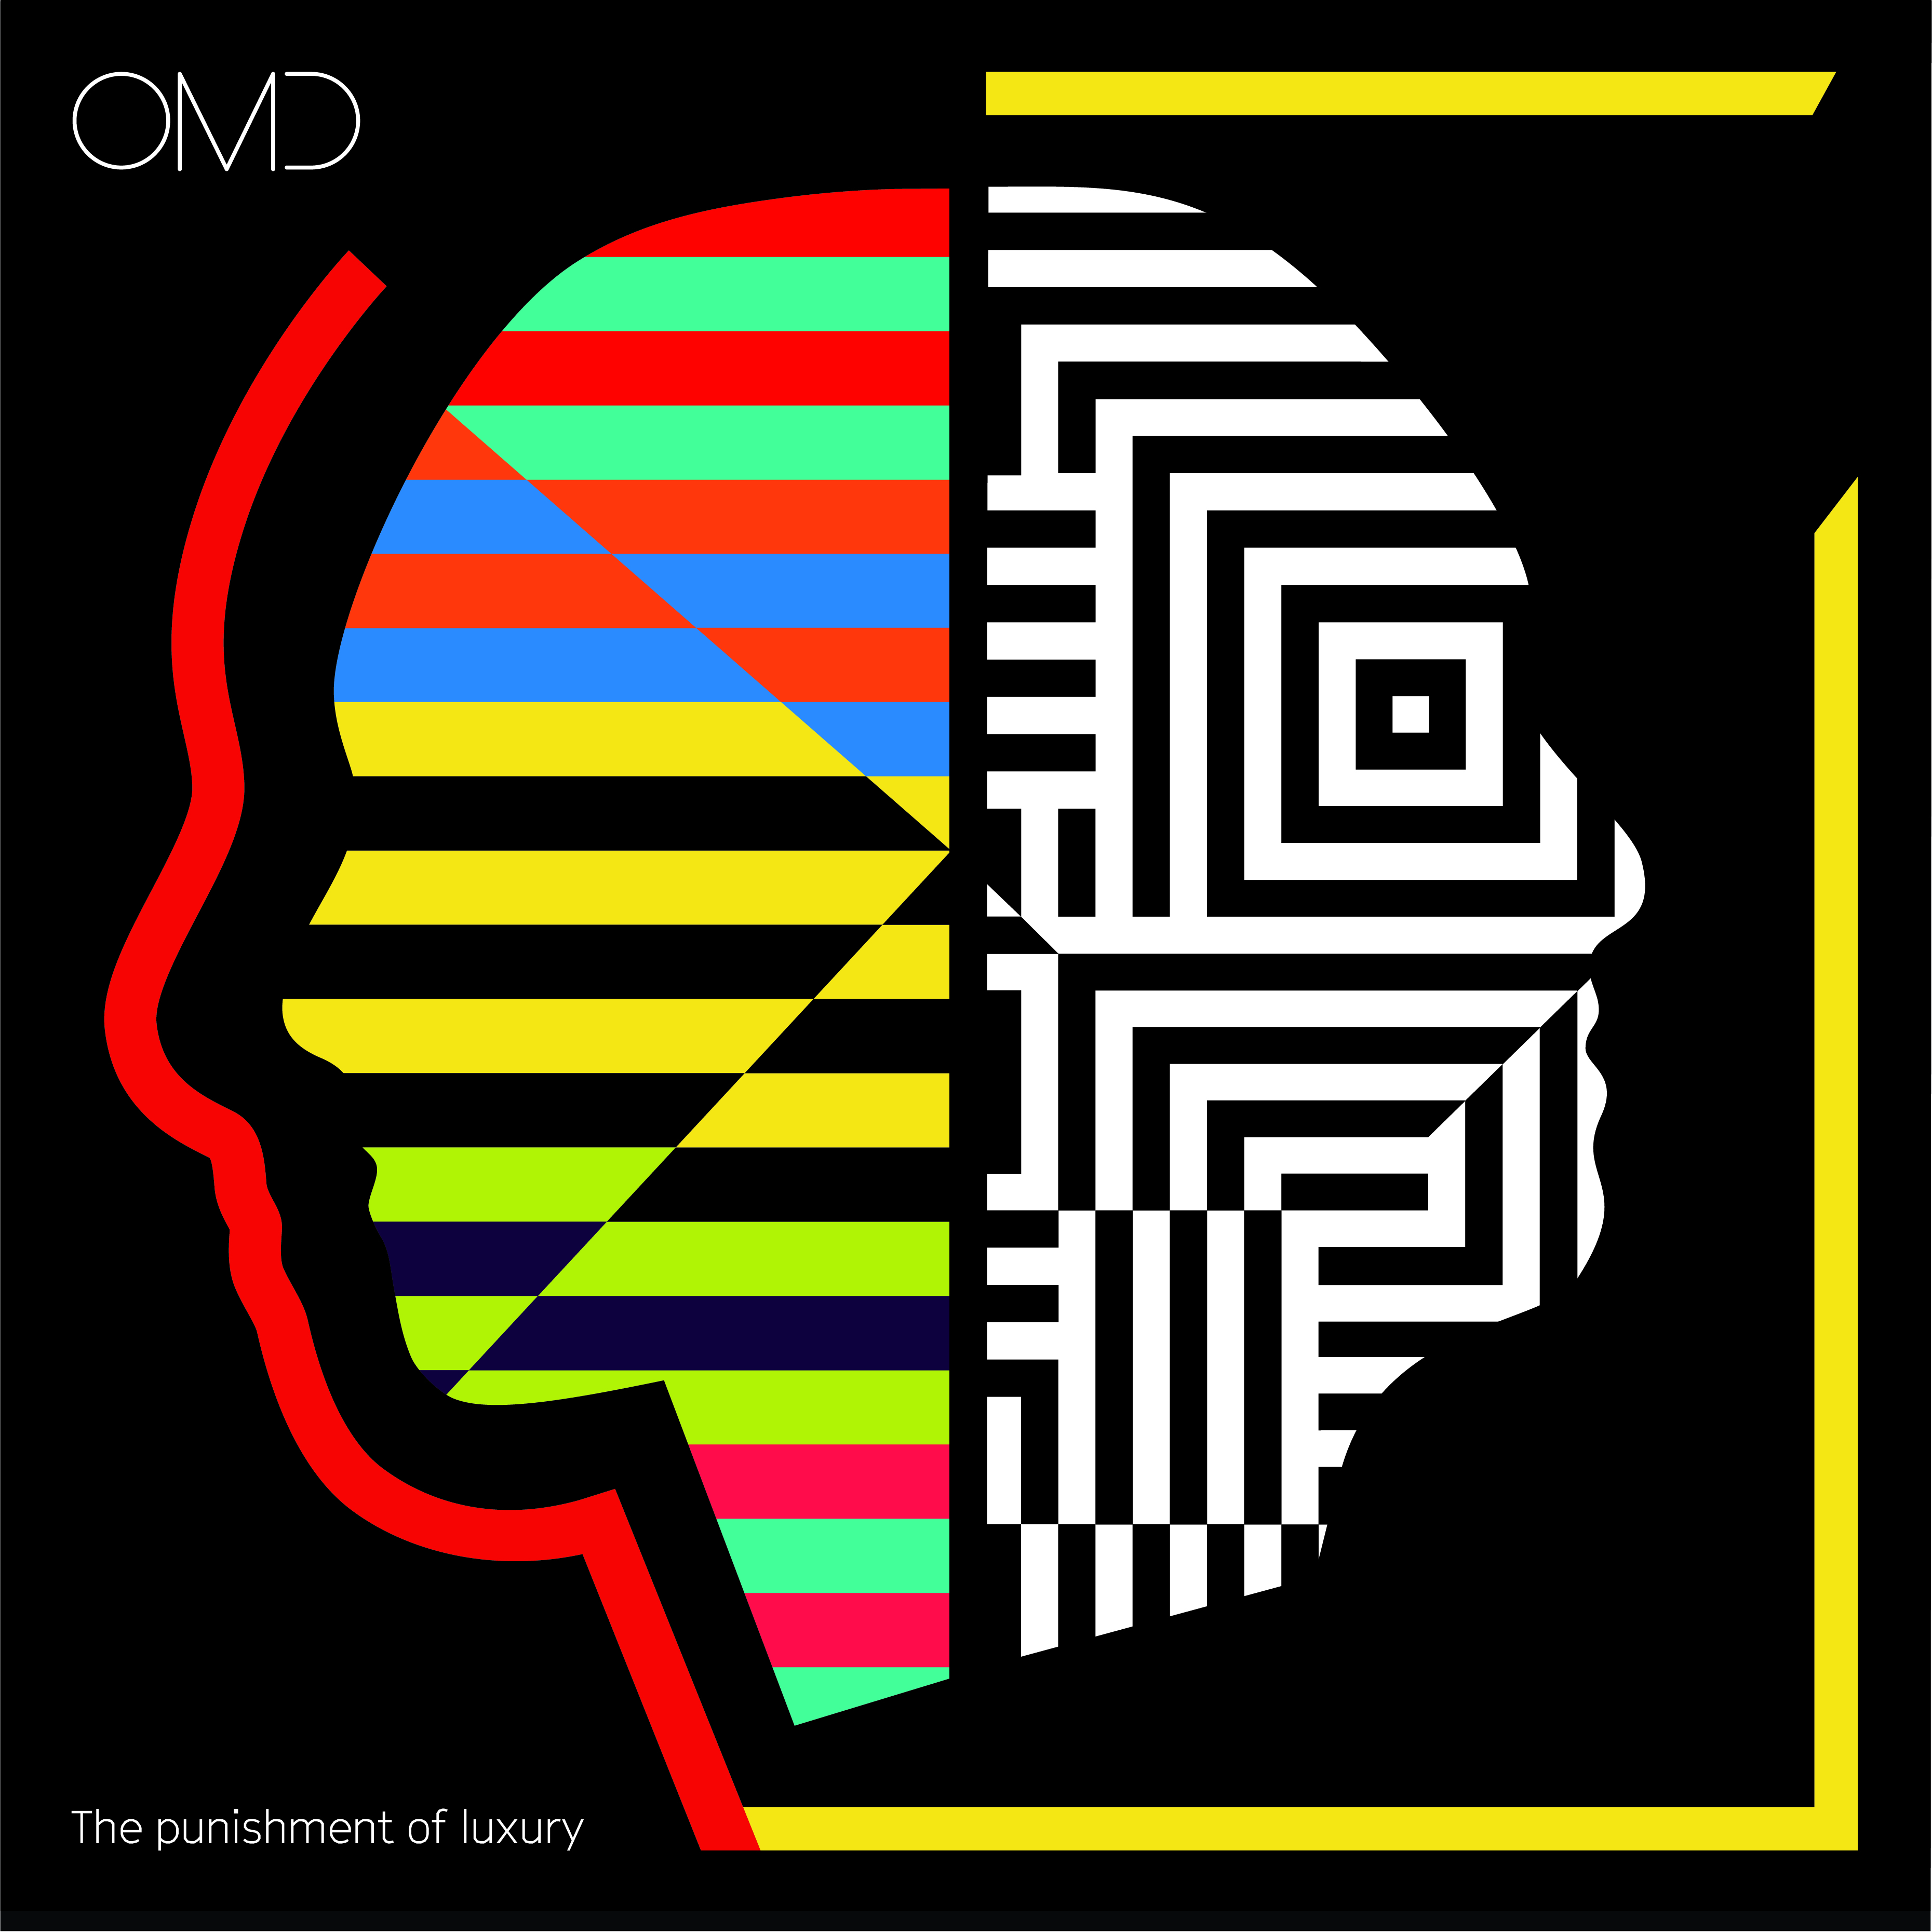 OMD punishment Album cover 01 01